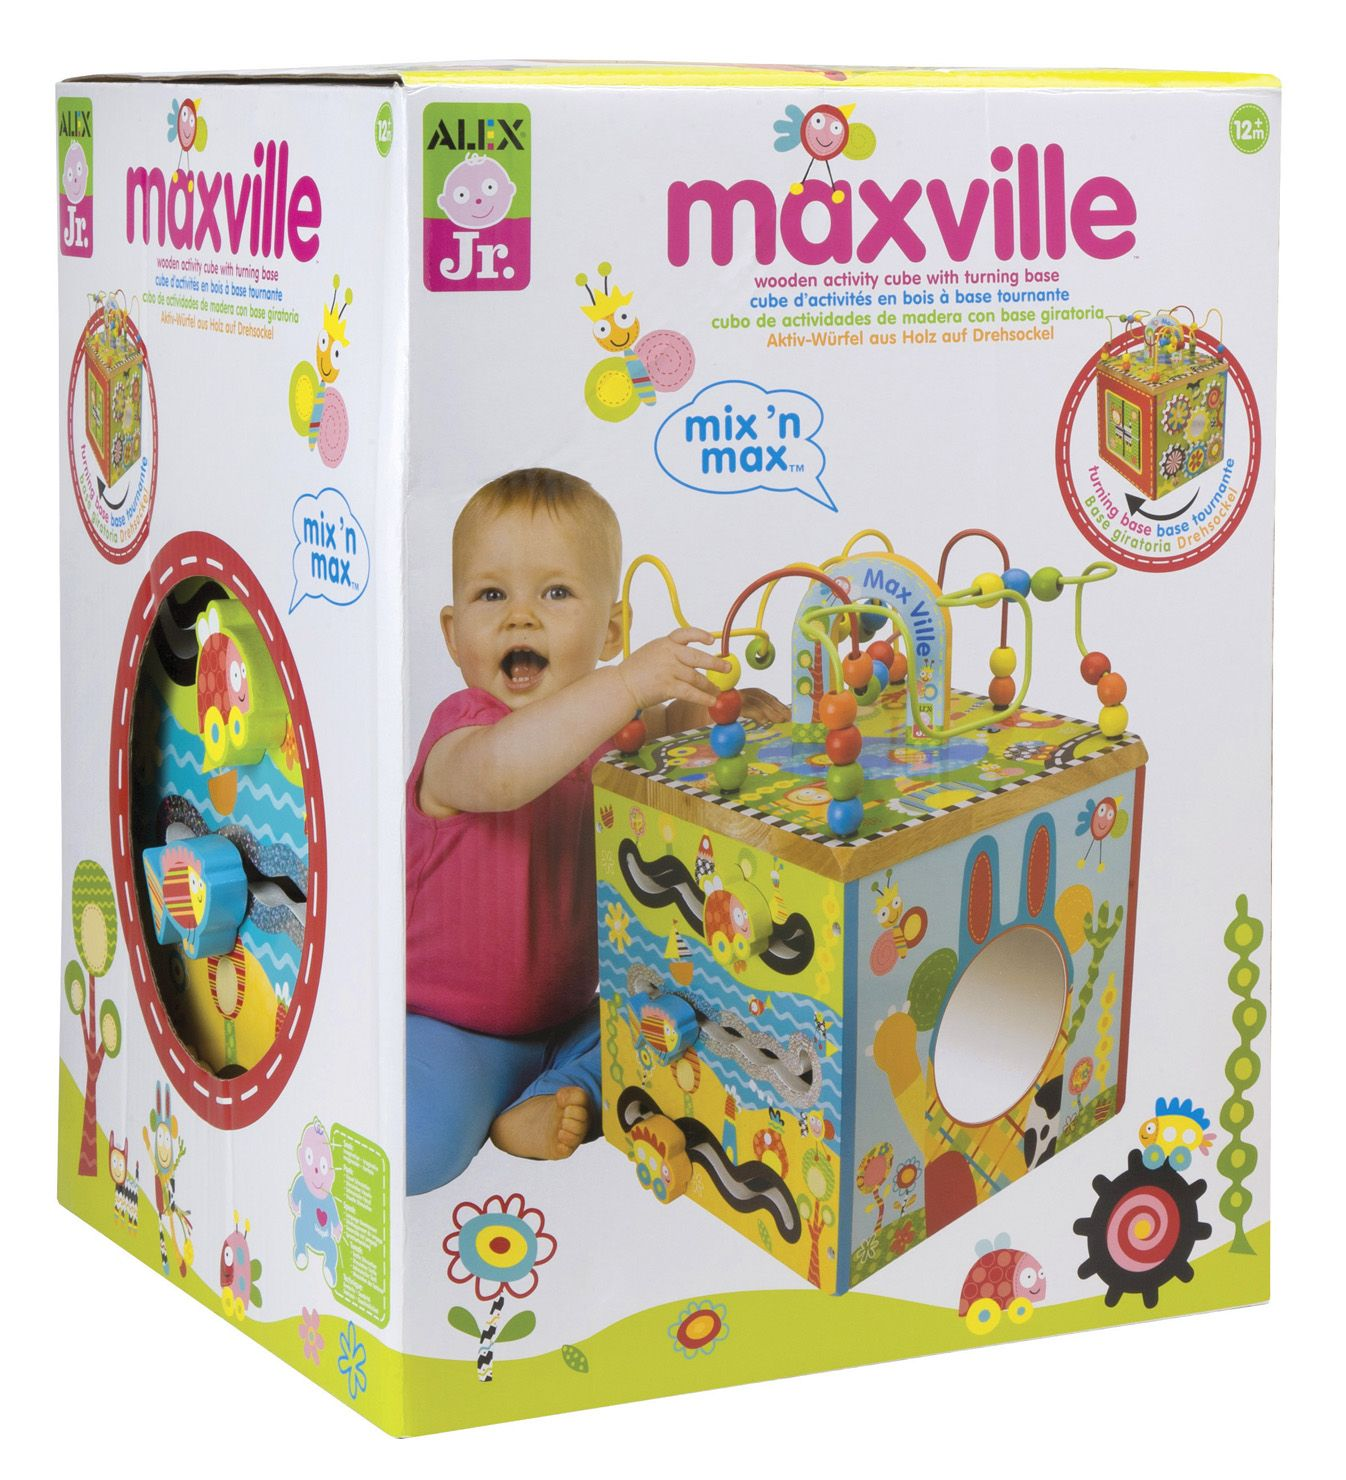 The Maxville Wooden Activity Cube is more than a toy s an